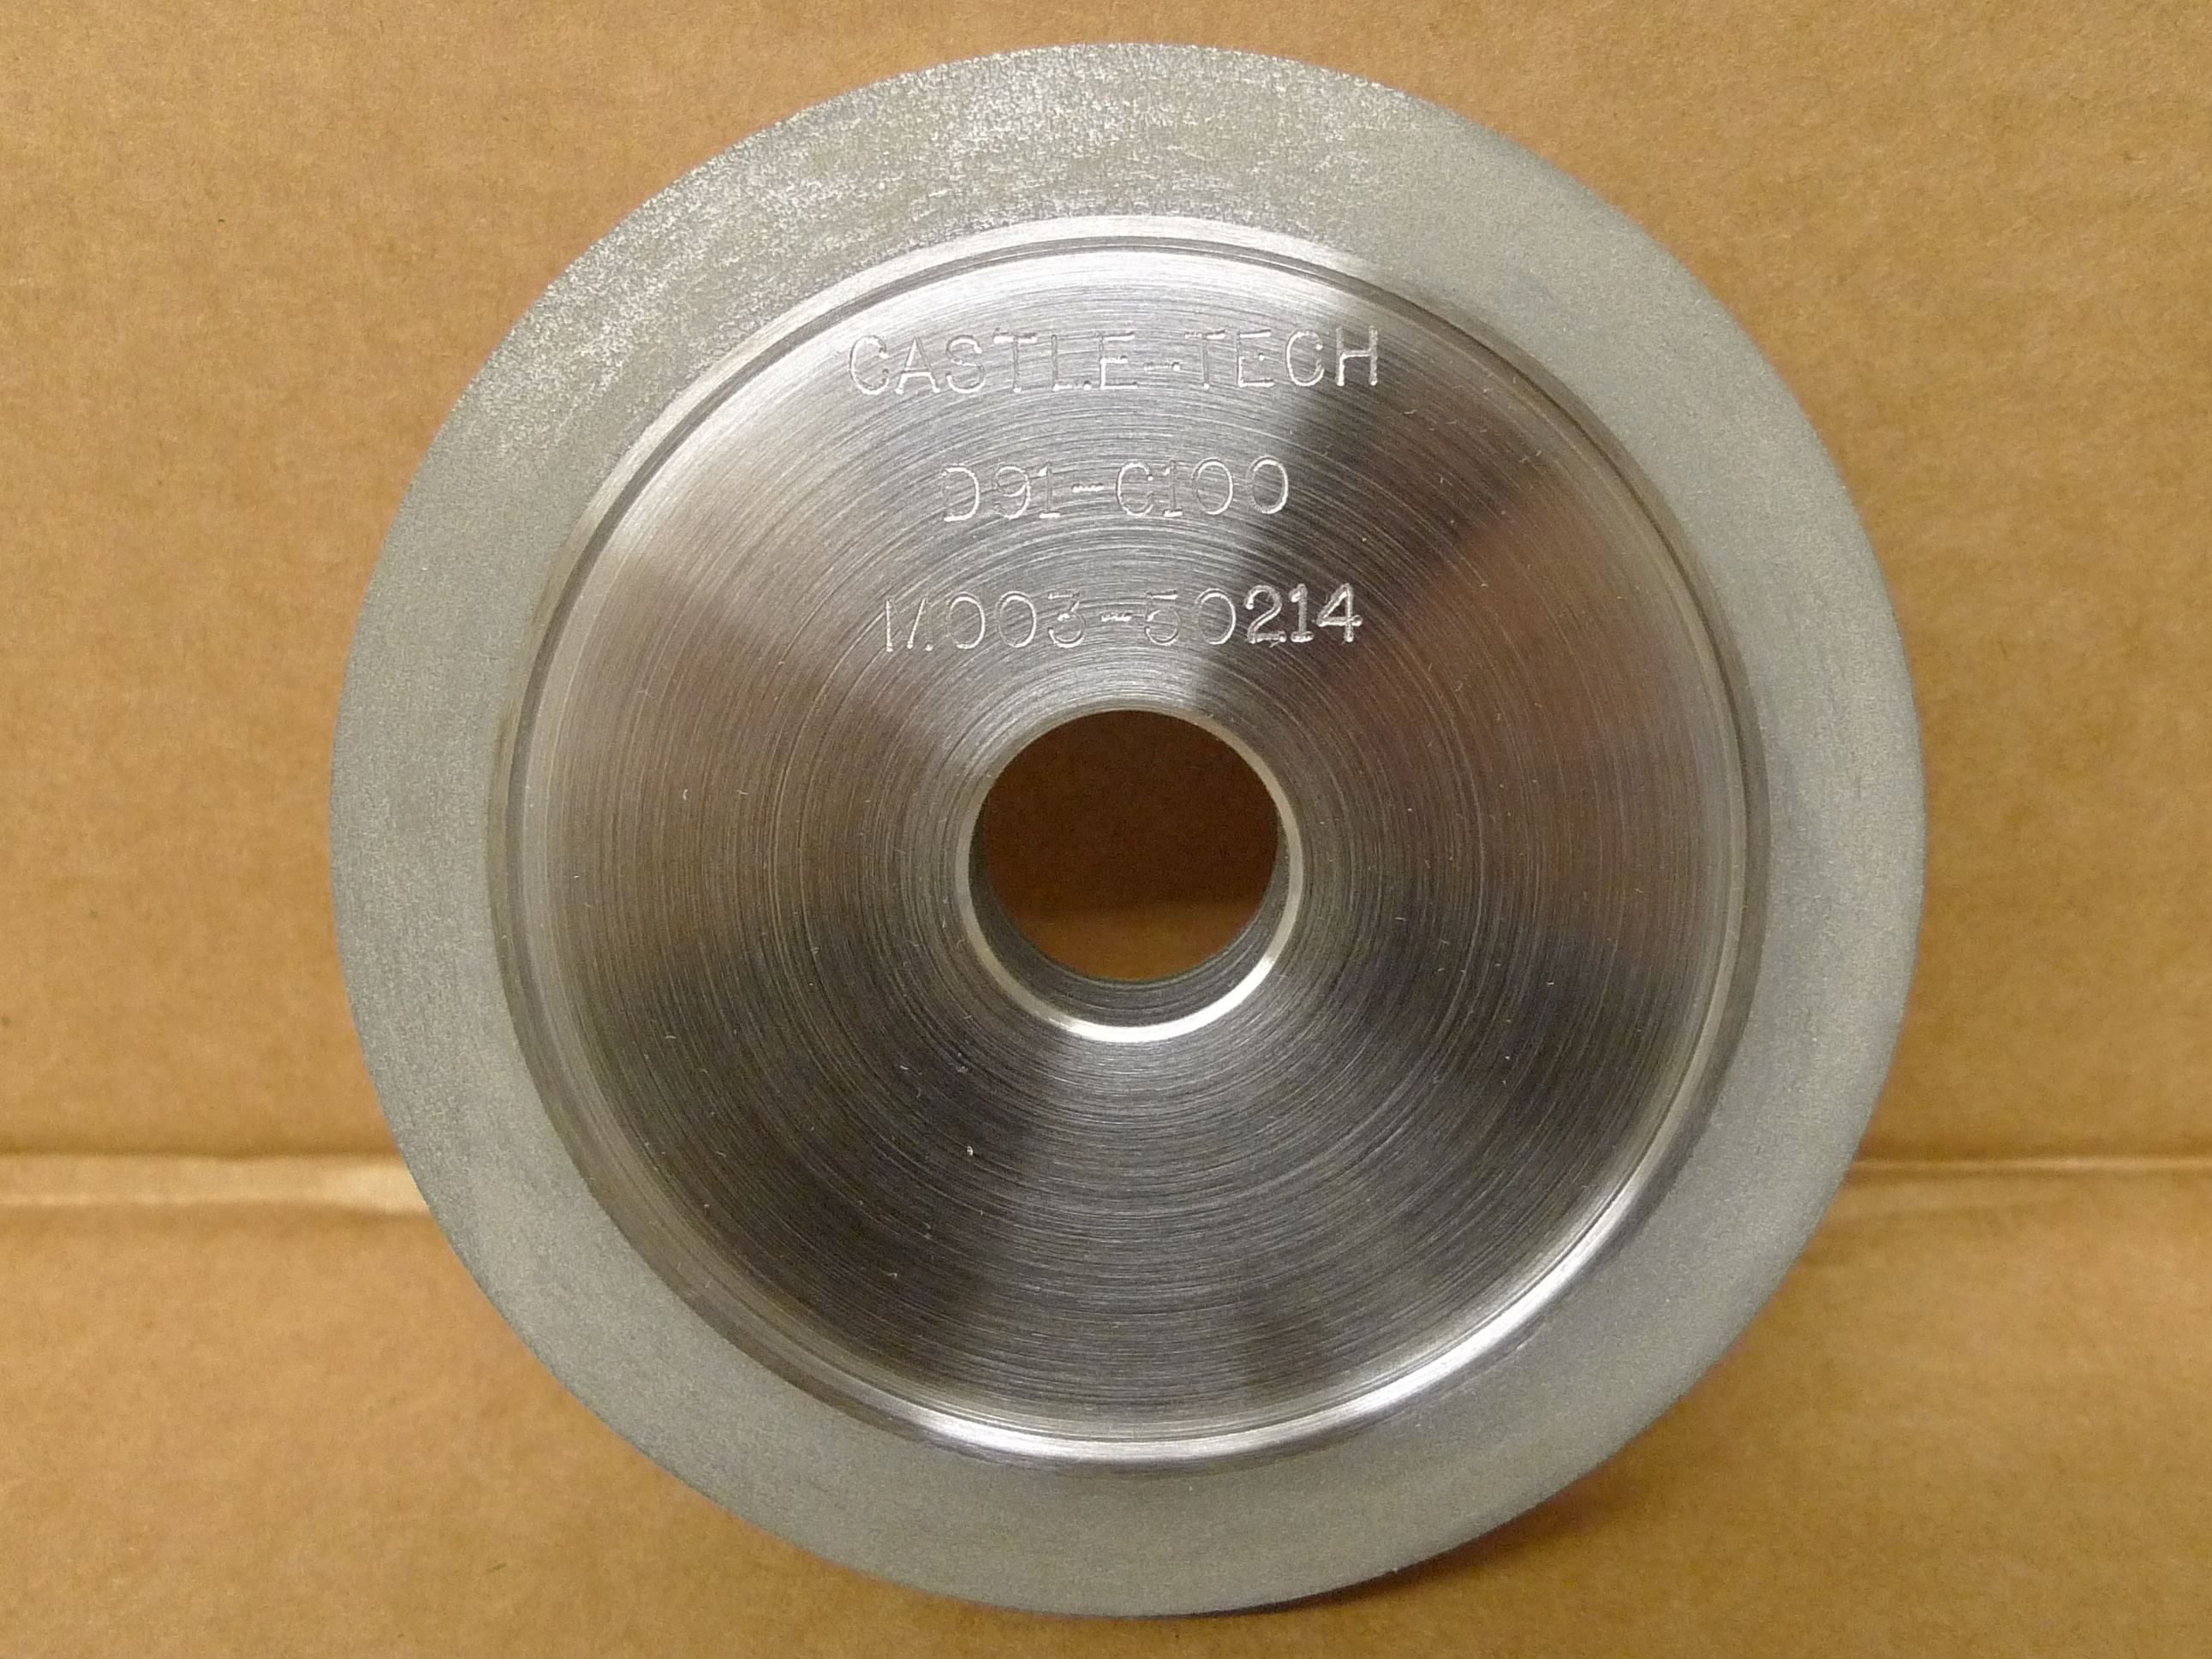 METAL-BONDED WHEELS